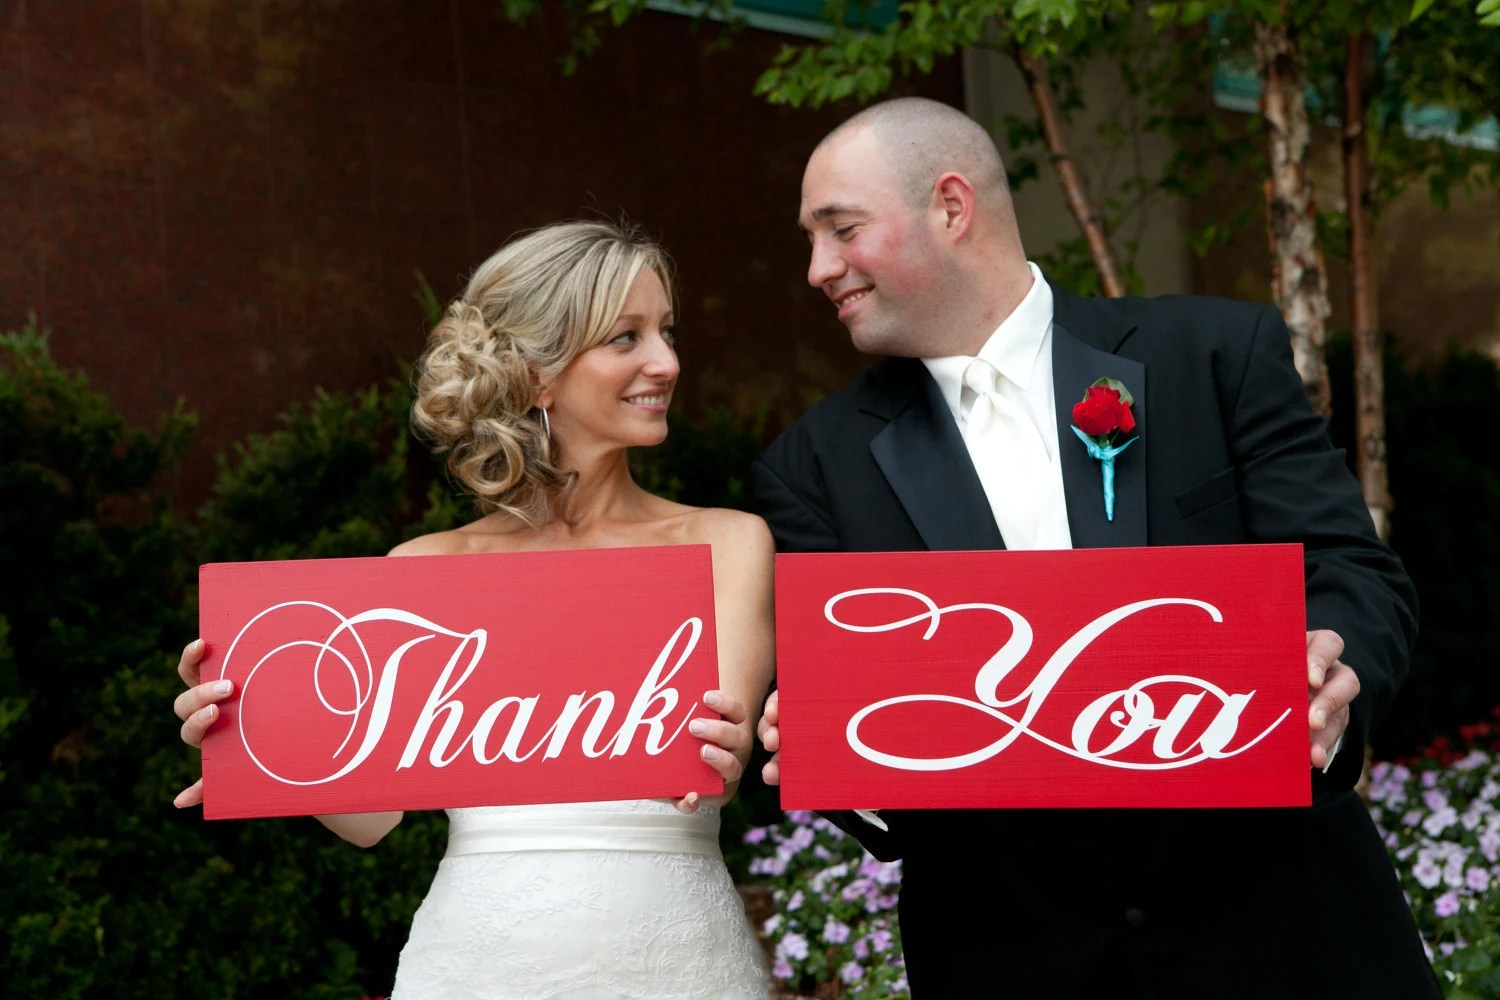 Wedding Signs in Red.. I Do & Me Too or Thank You 2 Sided signs U Pick... . Over 300 wedding signs in our shop.